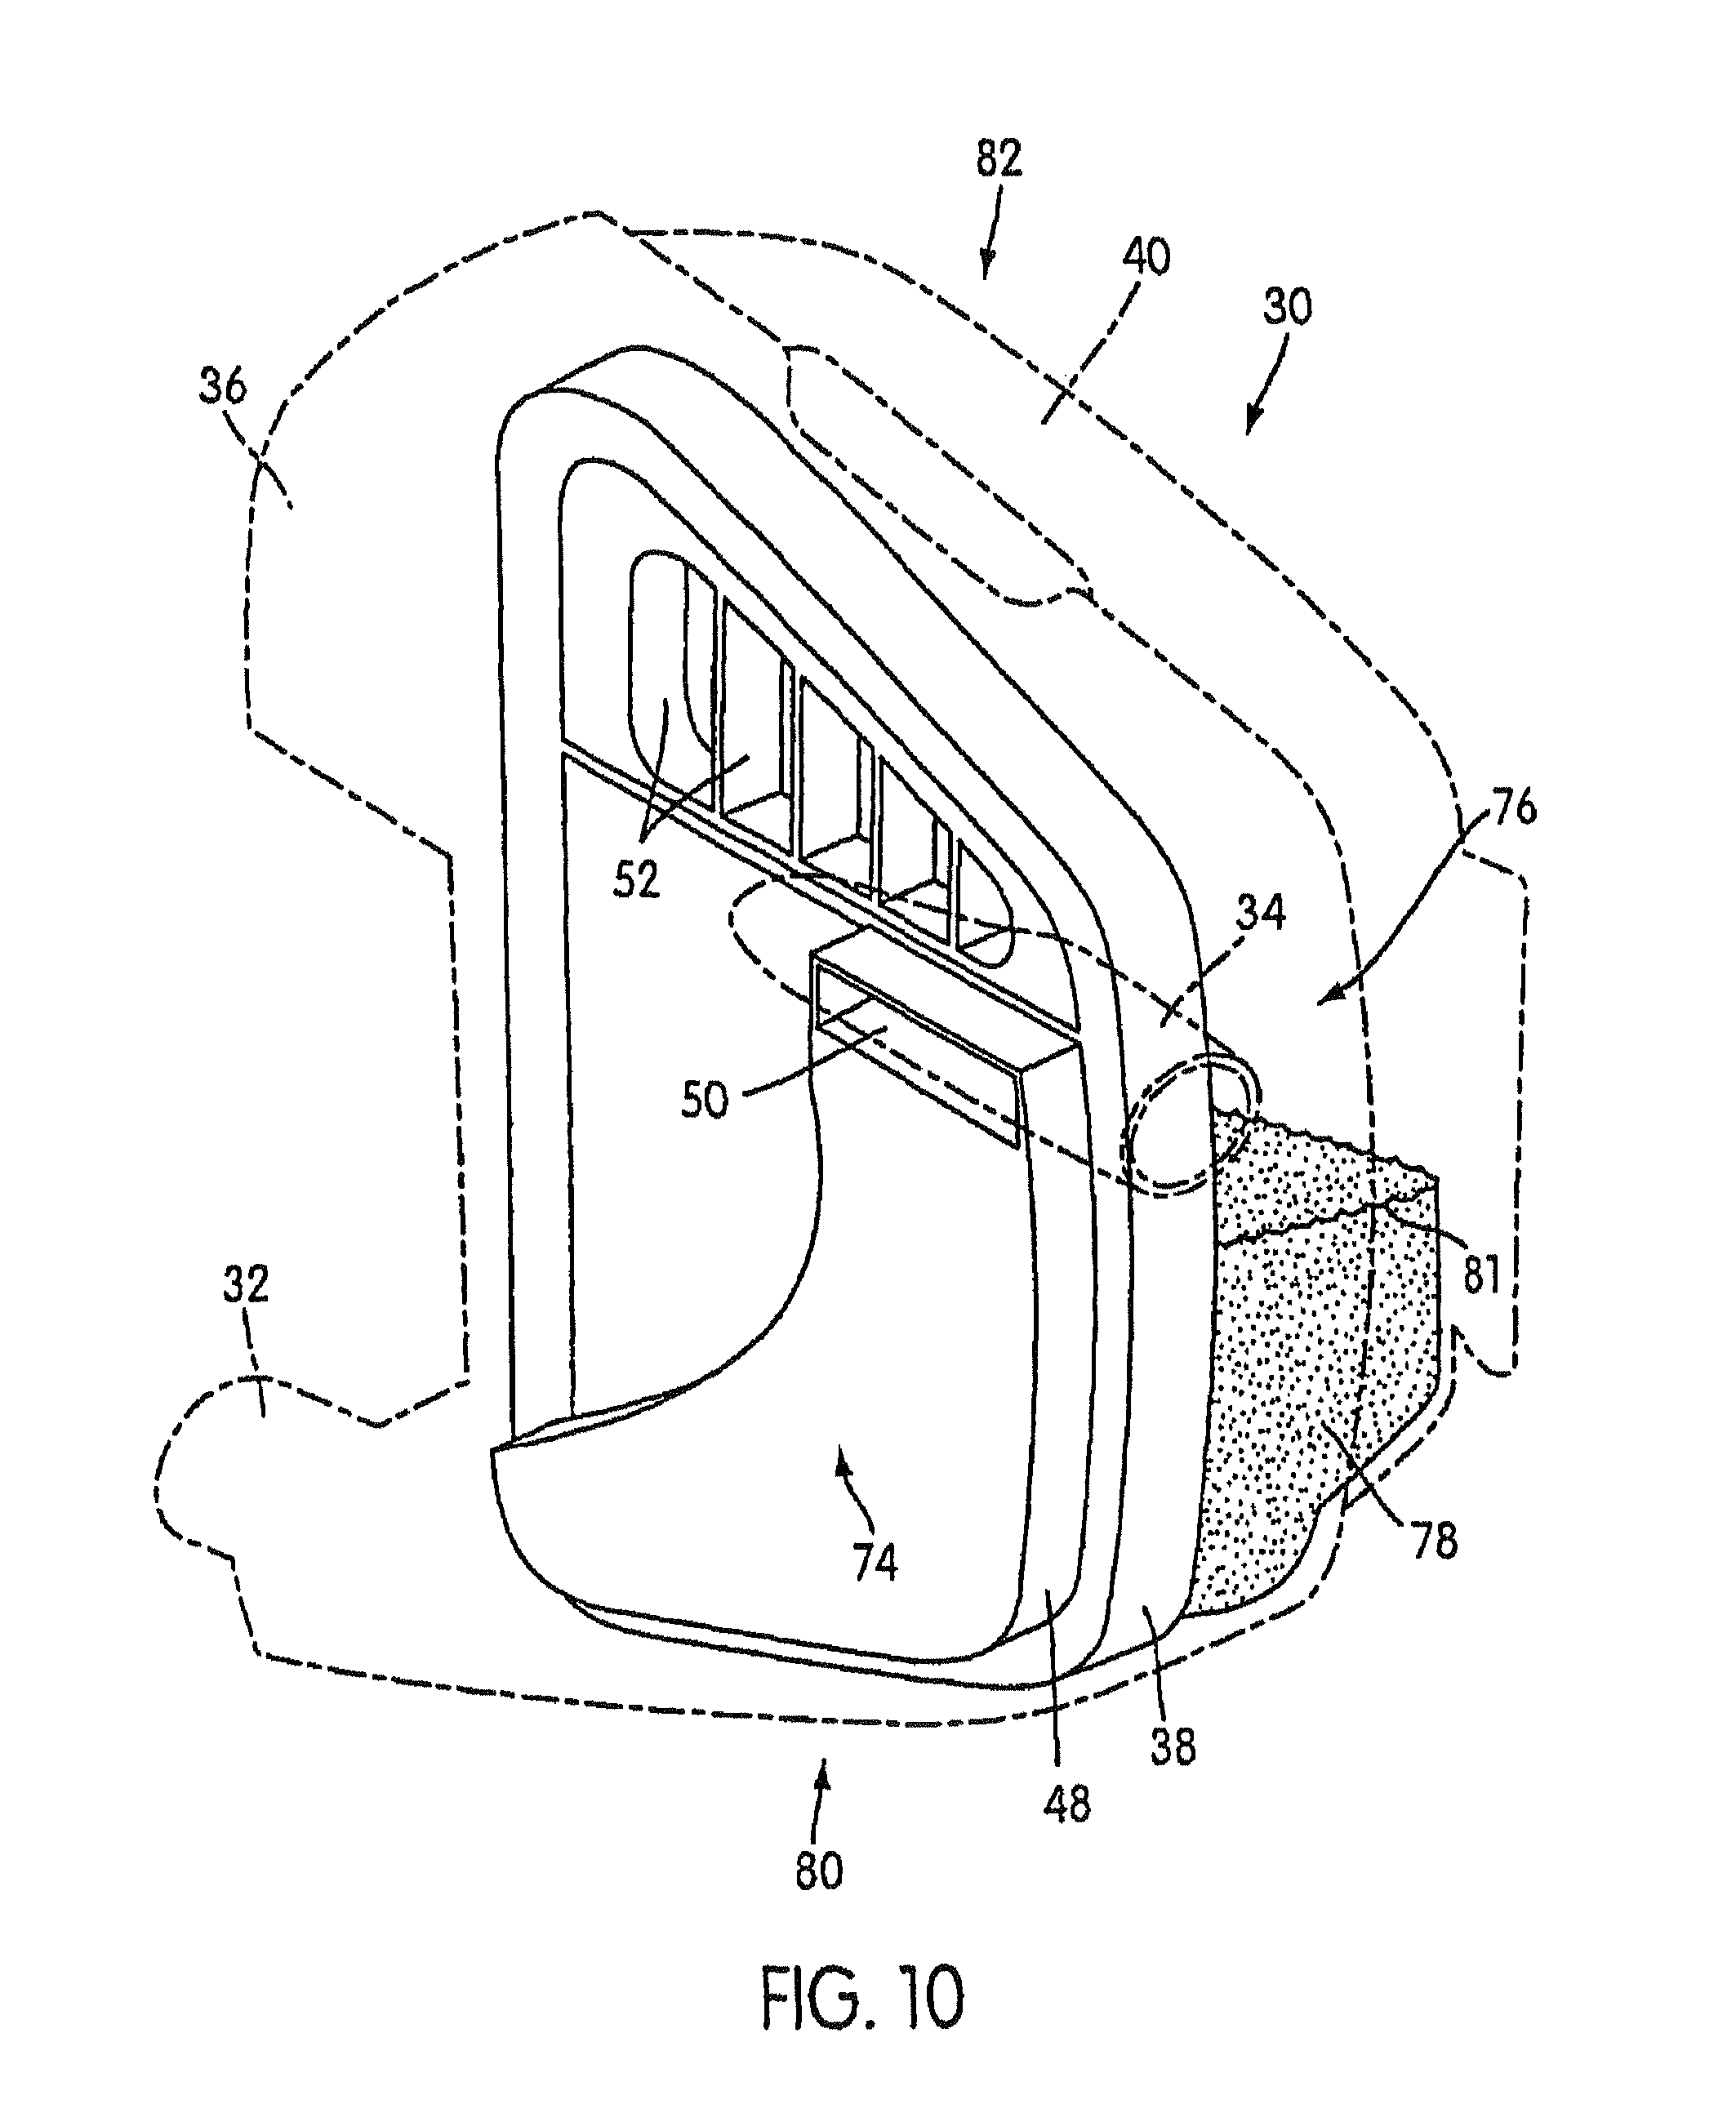 USRE44453 Humidifier with structure to prevent backflow of liquid  #3F3F3F